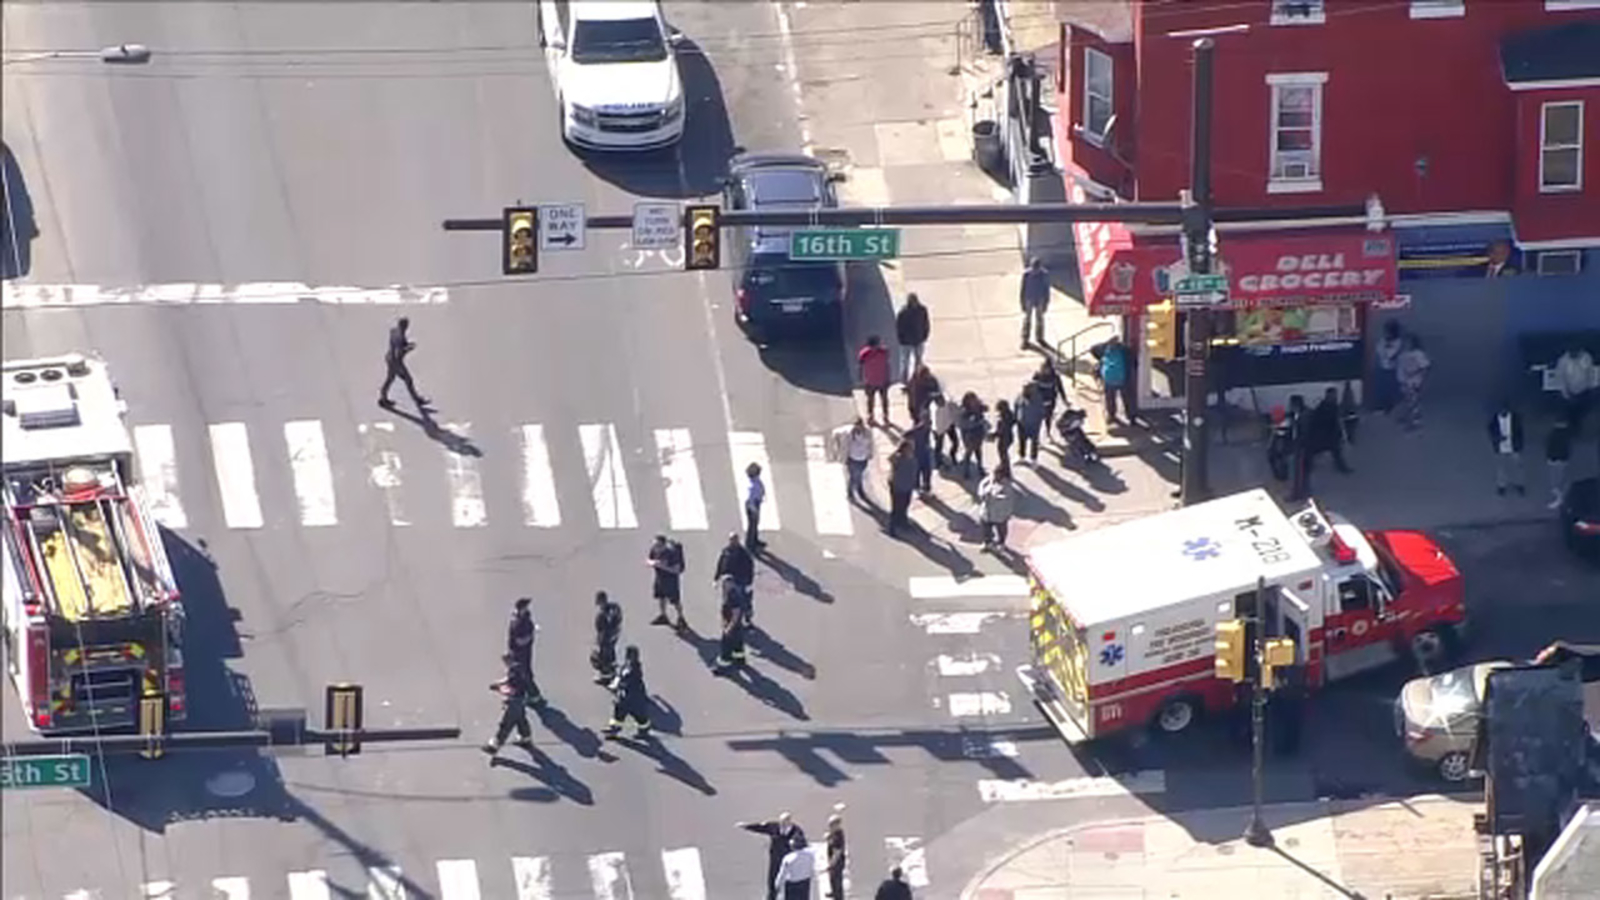 Pedestrian accident leaves 3 injured in North Philadelphia